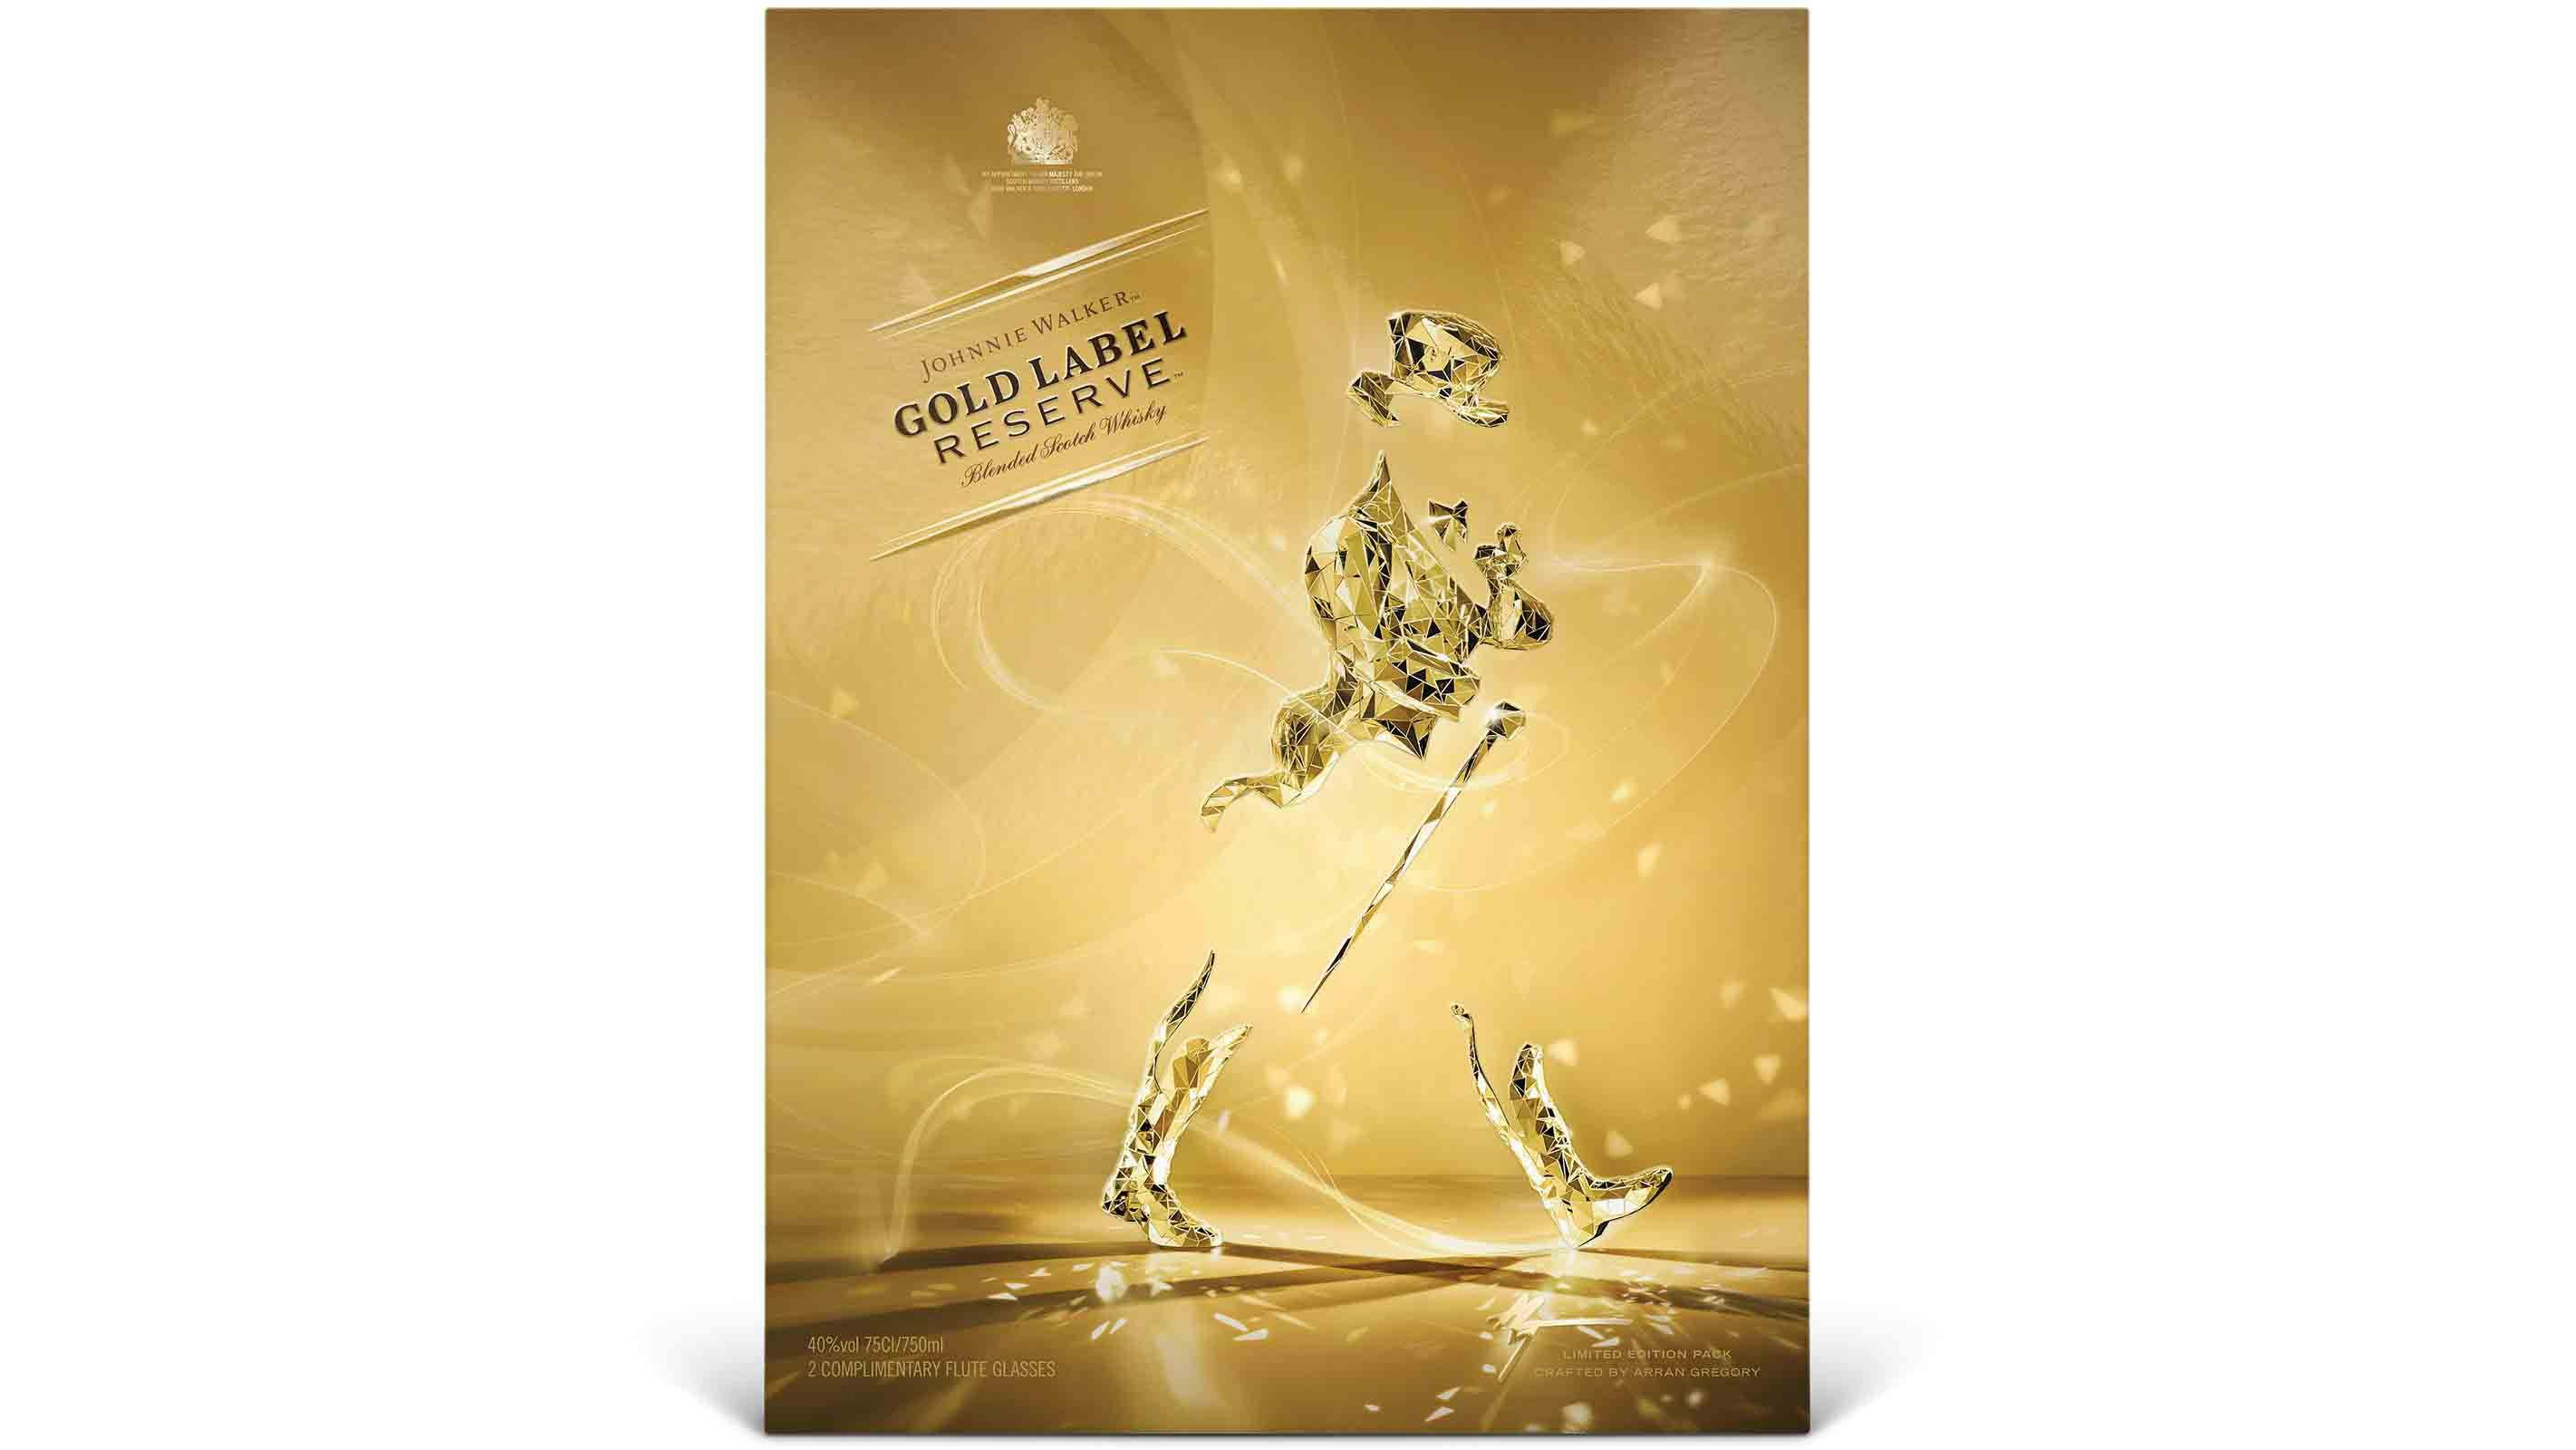 Pack de Johnnie Walker Gold Label Reserve Limited Edition diseñado por Arran Gregory